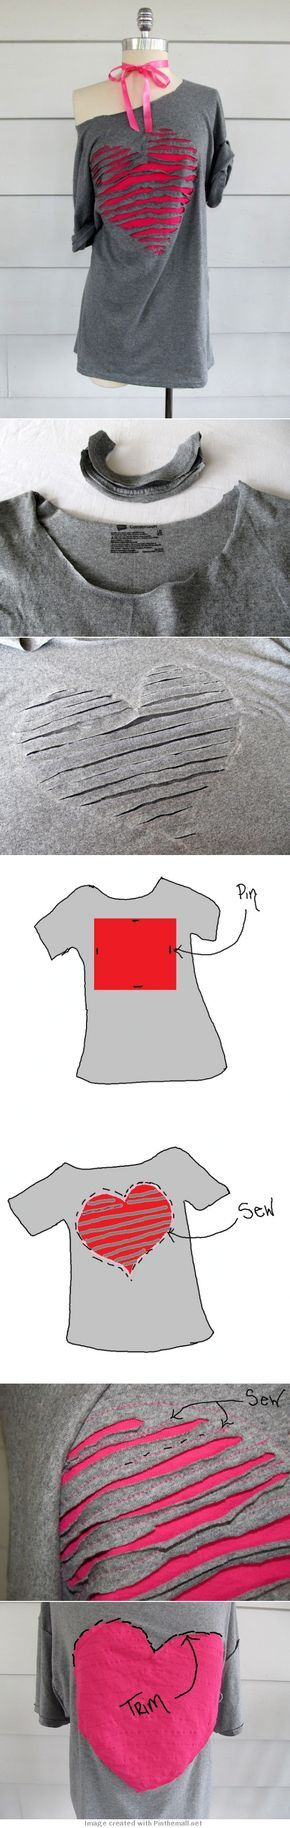 DIY Off the shoulder upcycled heart t shirt tutorial from WobiSobi, love this site!